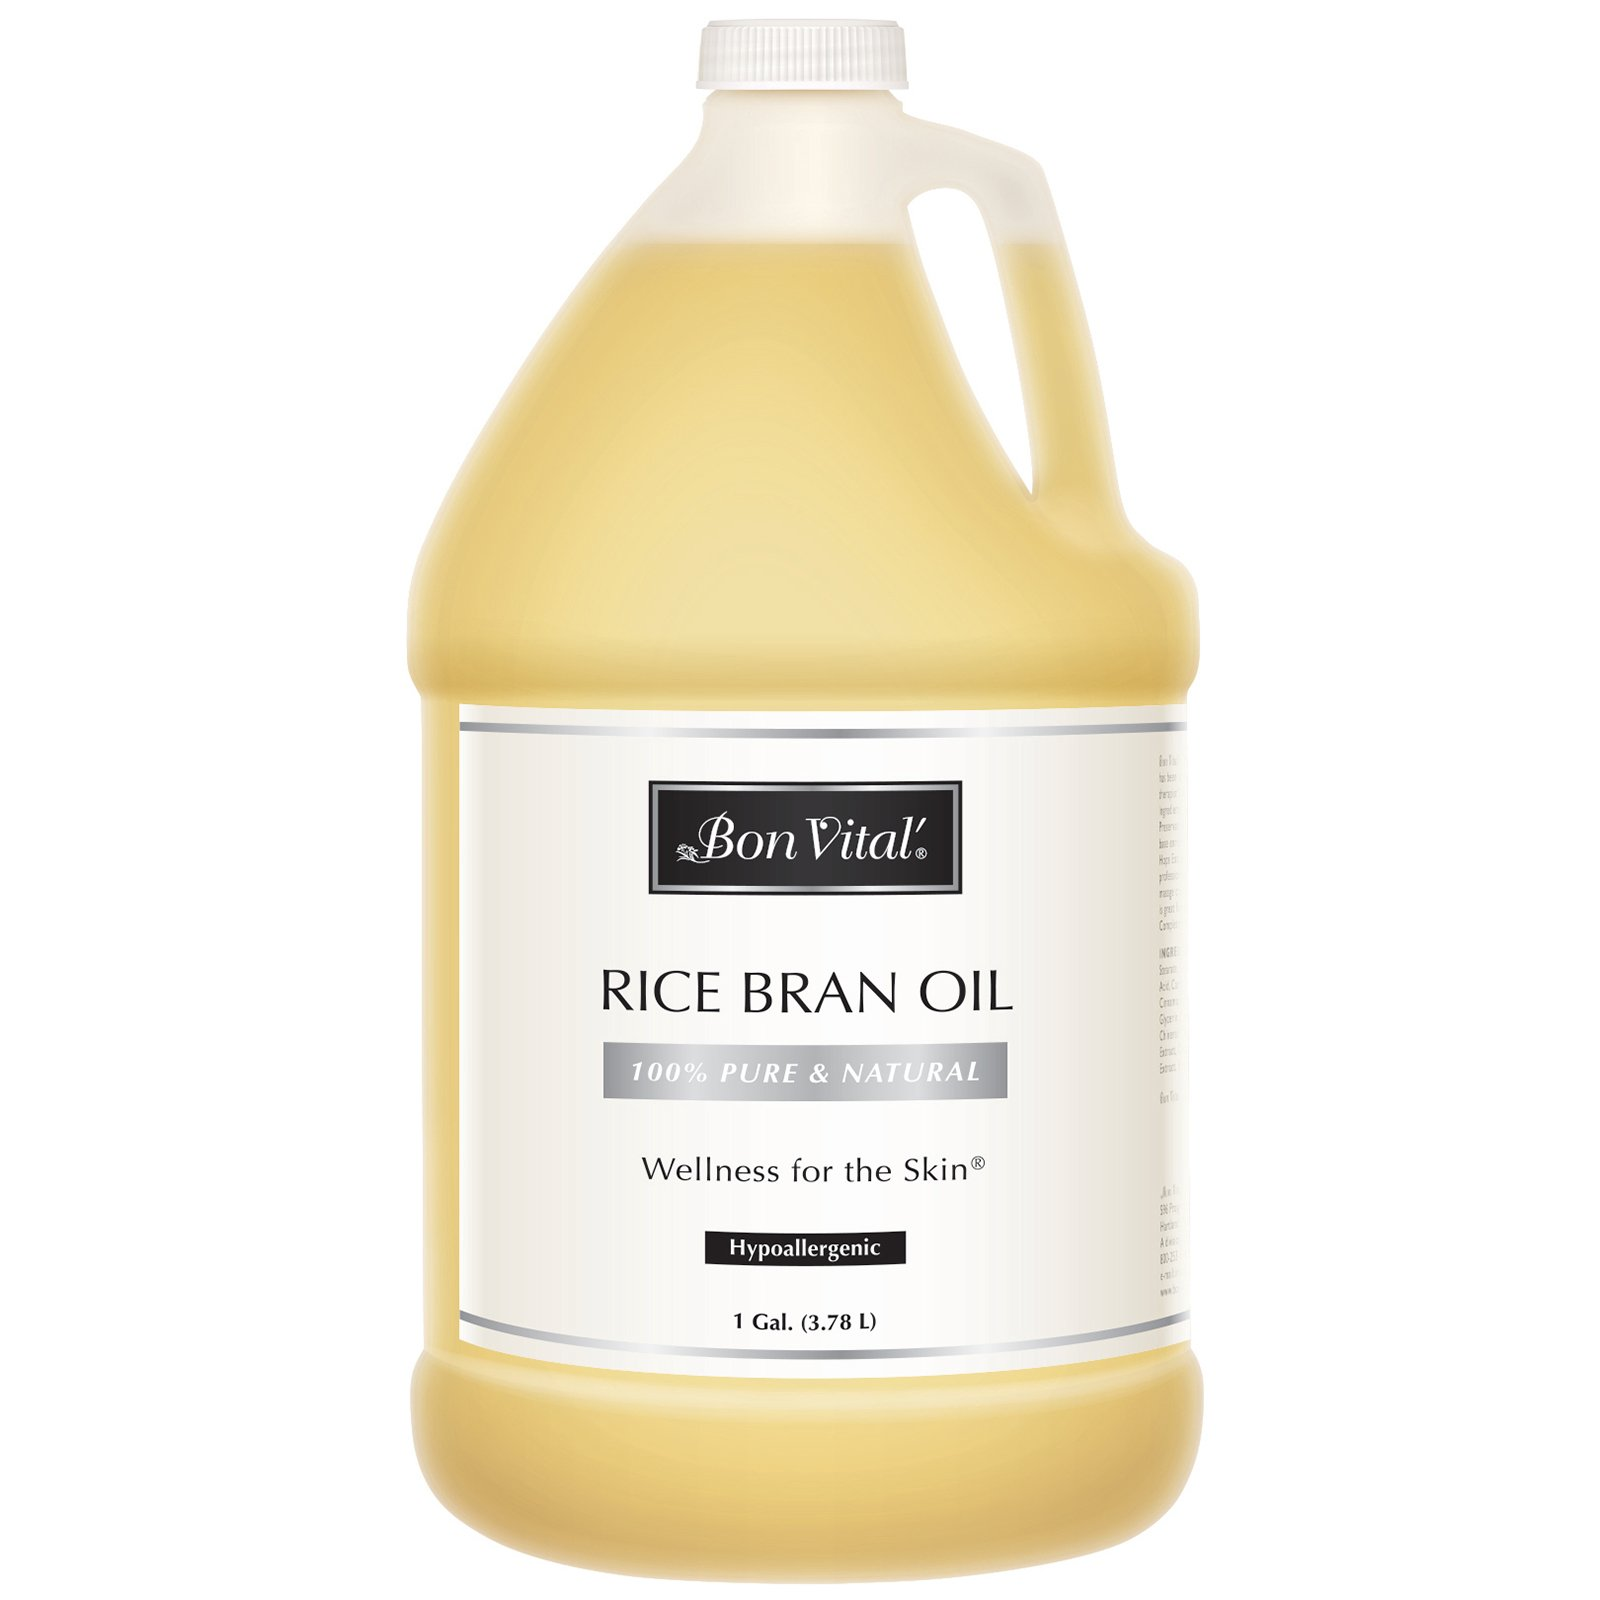 Bon Vital' Rice Bran Oil, 100% Pure and Cold Pressed Carrier Oils for Diffusers, Professional Massage Oil, Best Beauty Secret for Soft & Smooth Skin, Moisturizer & Sore Muscle Relief, 1 Gallon Bottle by Bon Vital